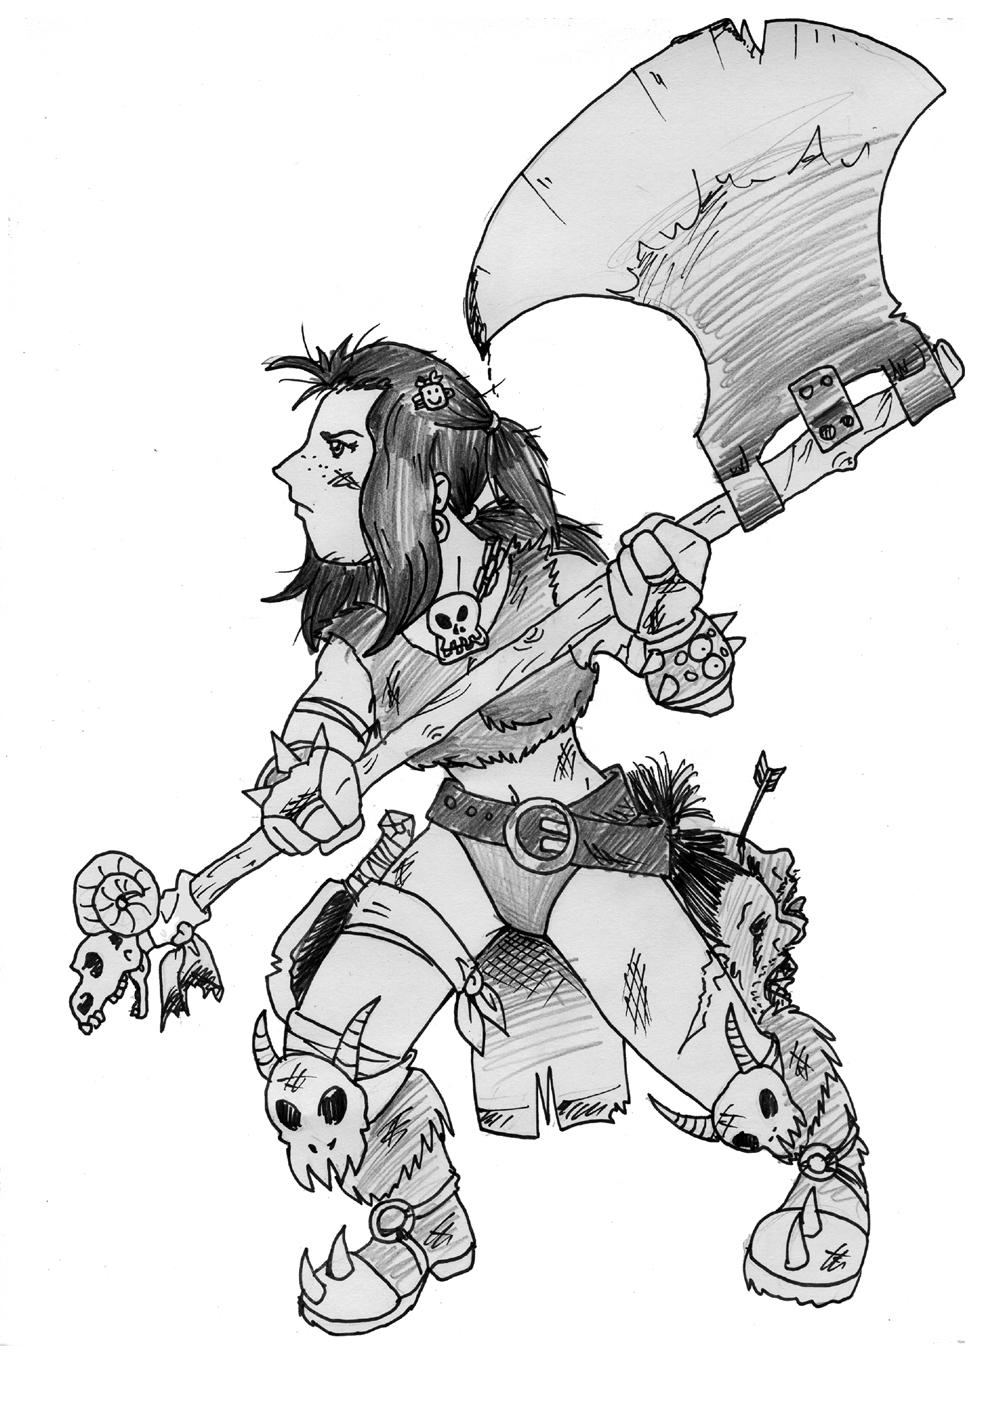 Marianinha The Conan Girl by samuka